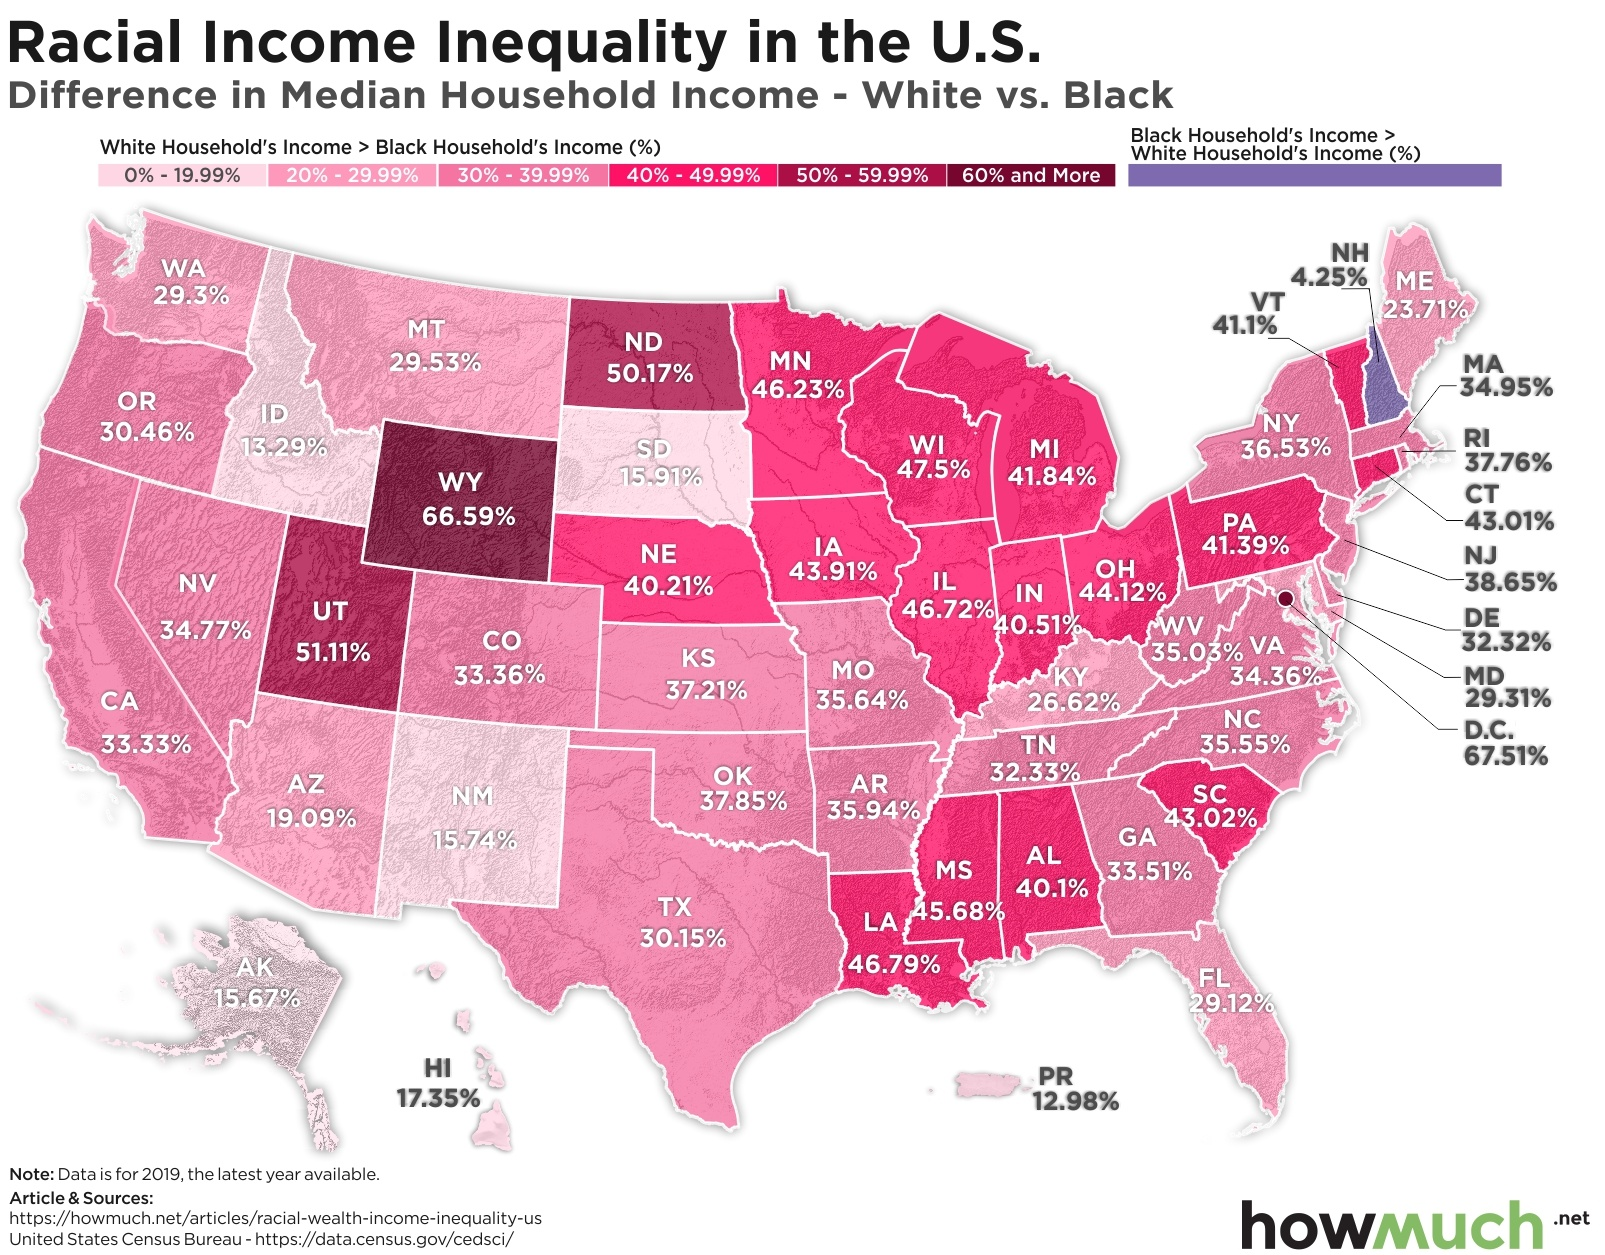 Racial income inequality by state